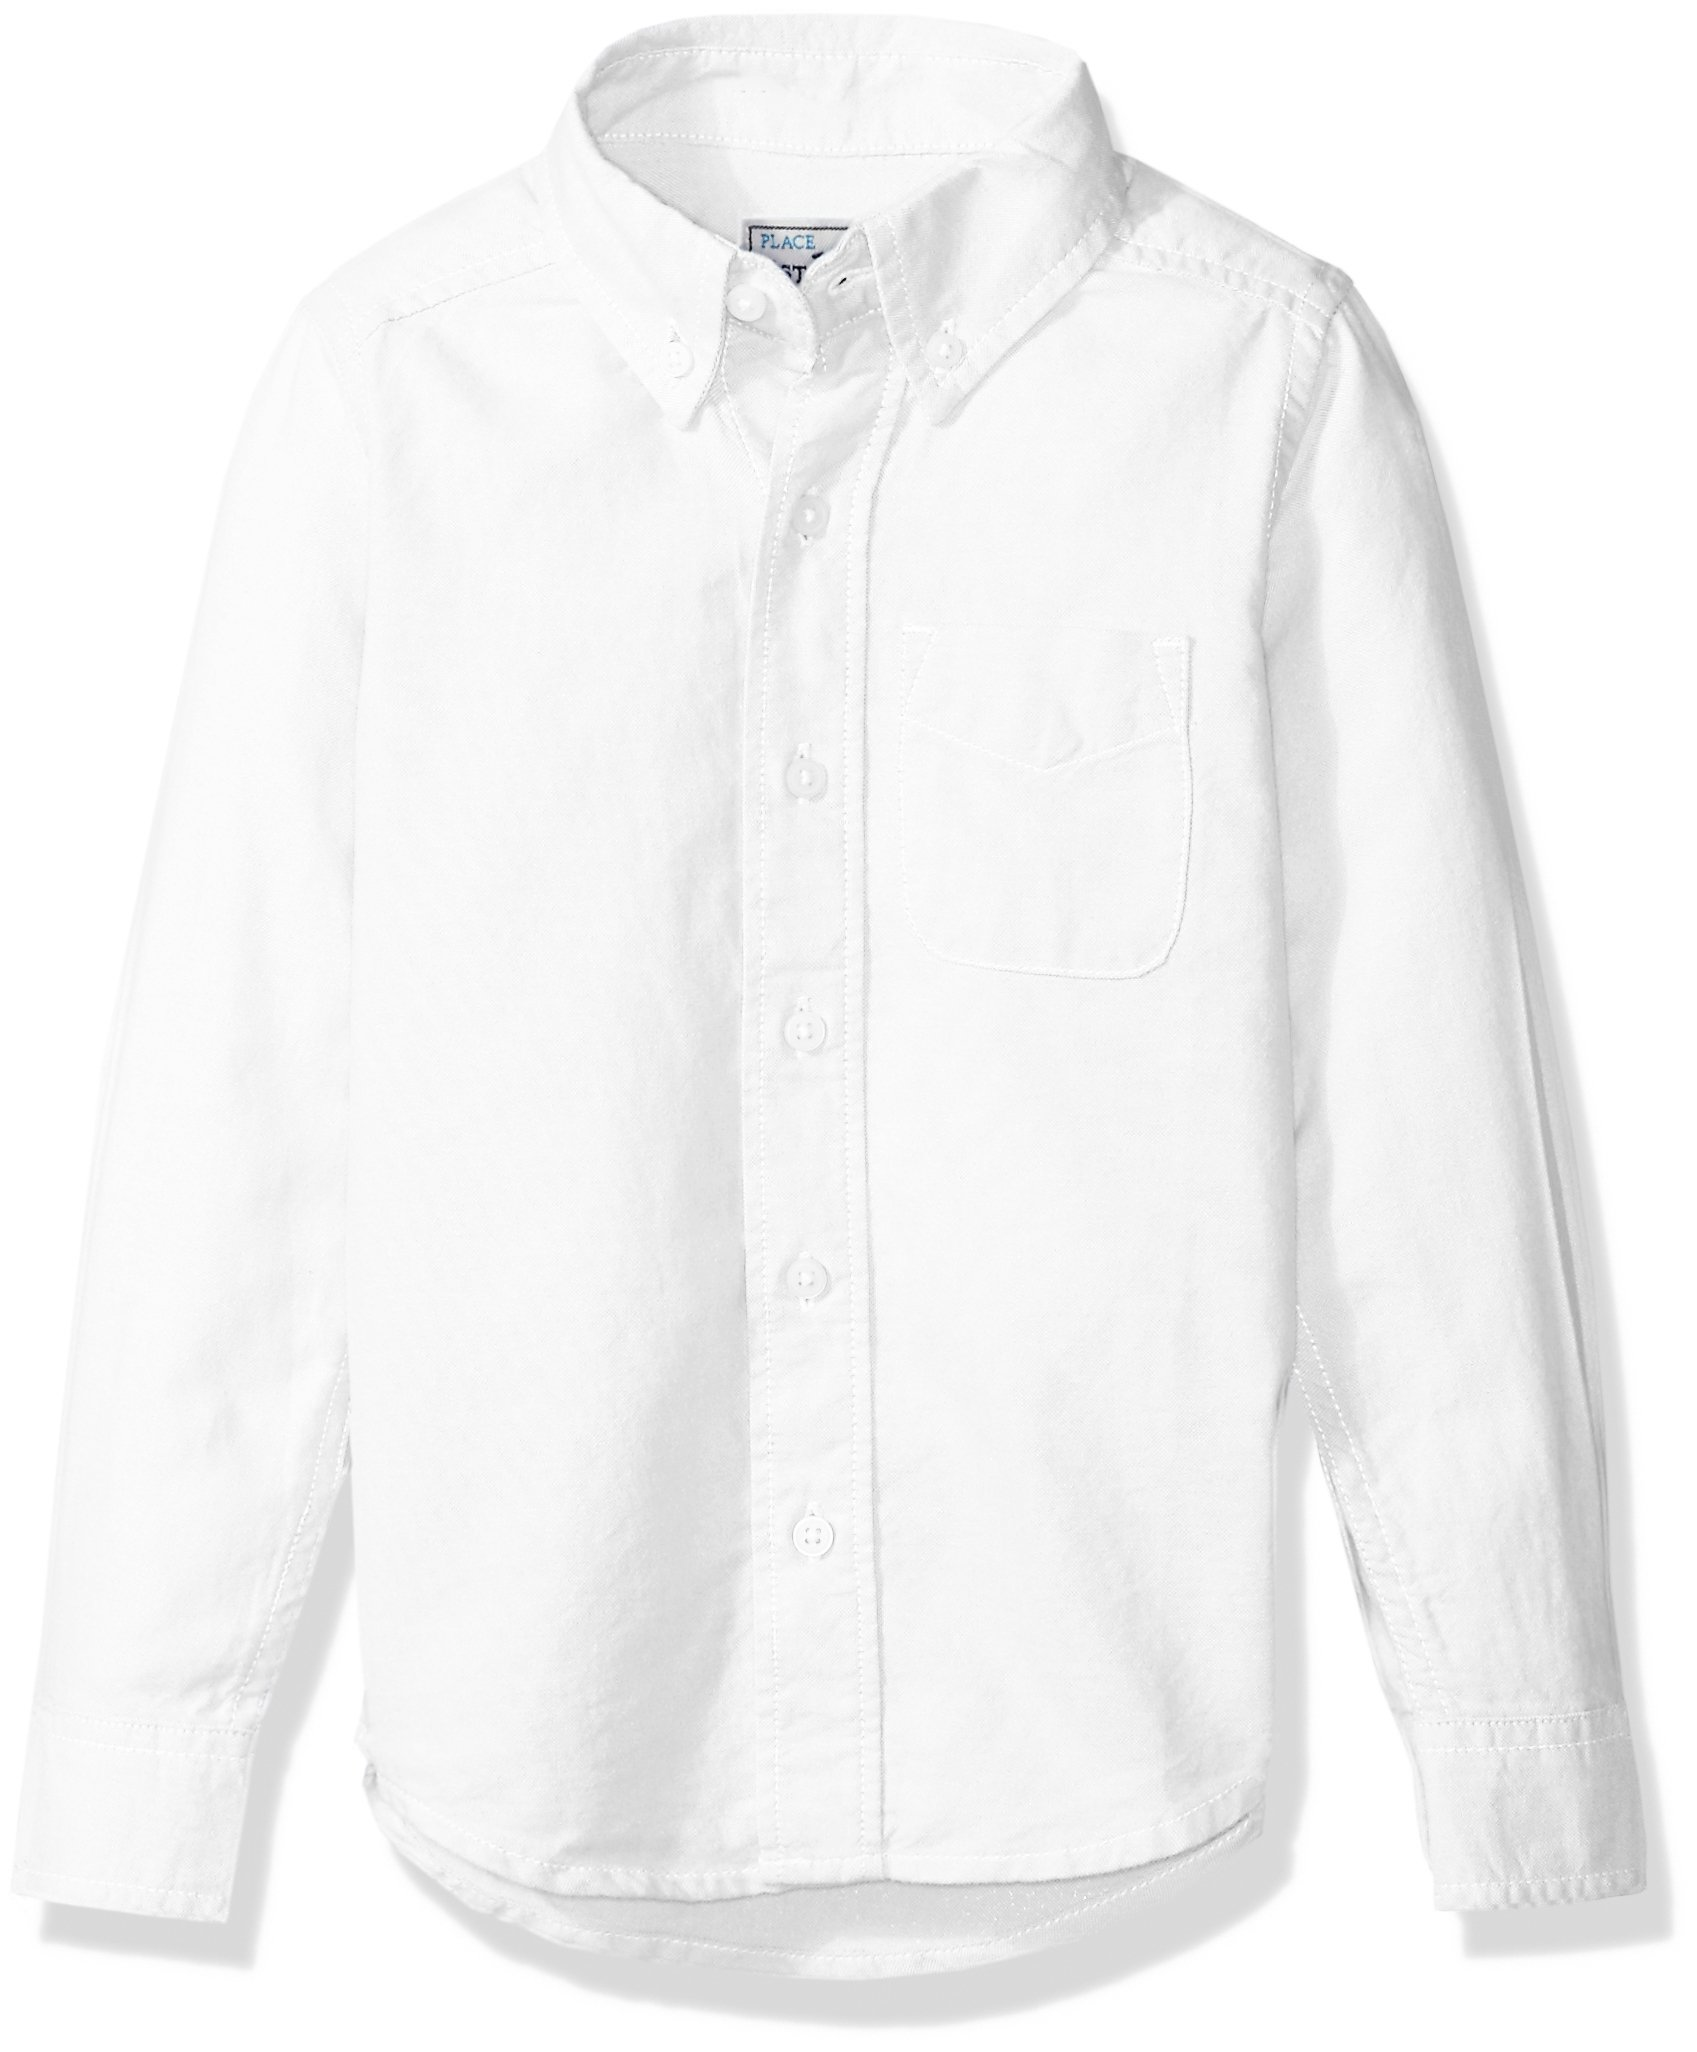 The Children's Place Little Boys' Long Sleeve Uniform Oxford Shirt, White 5063, Small/5/6